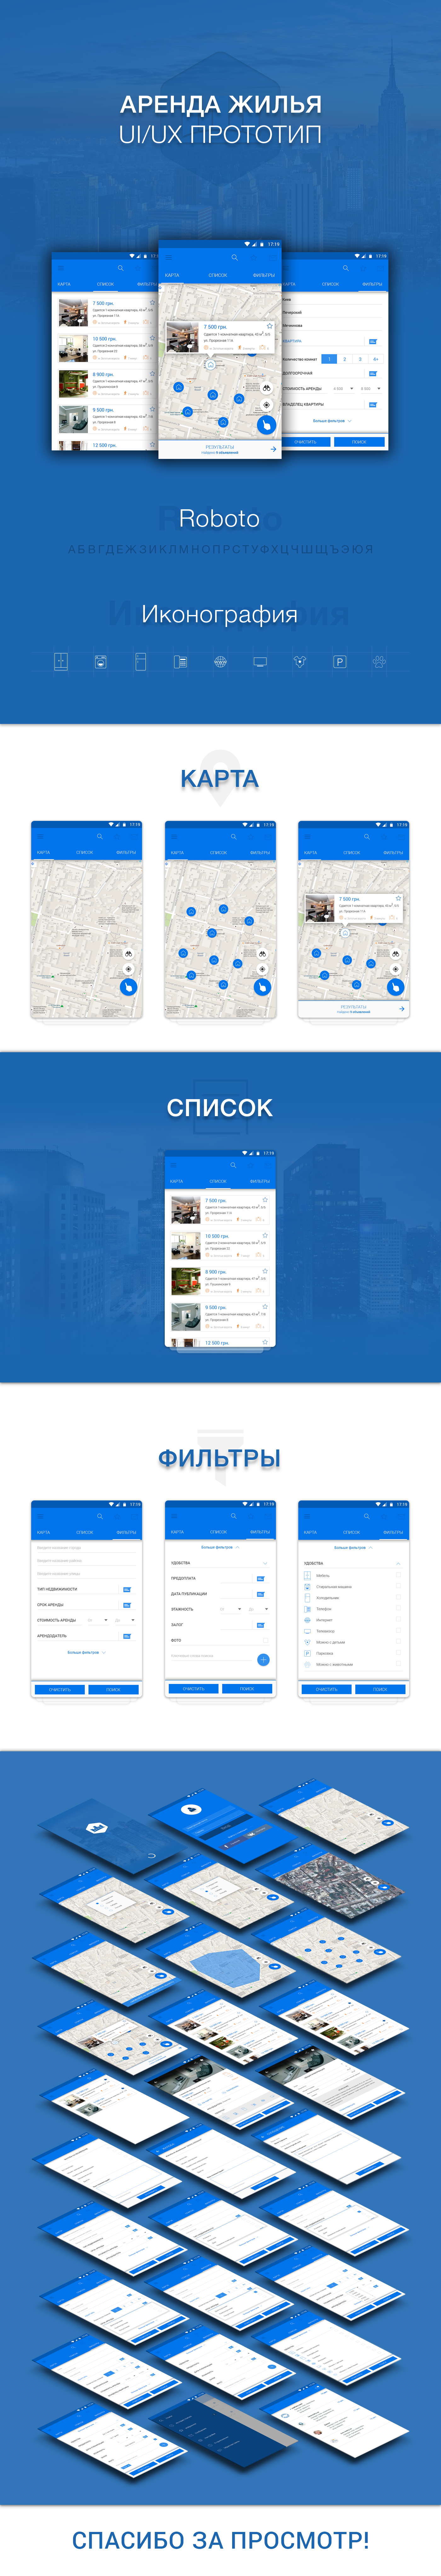 Mobile app android real estate